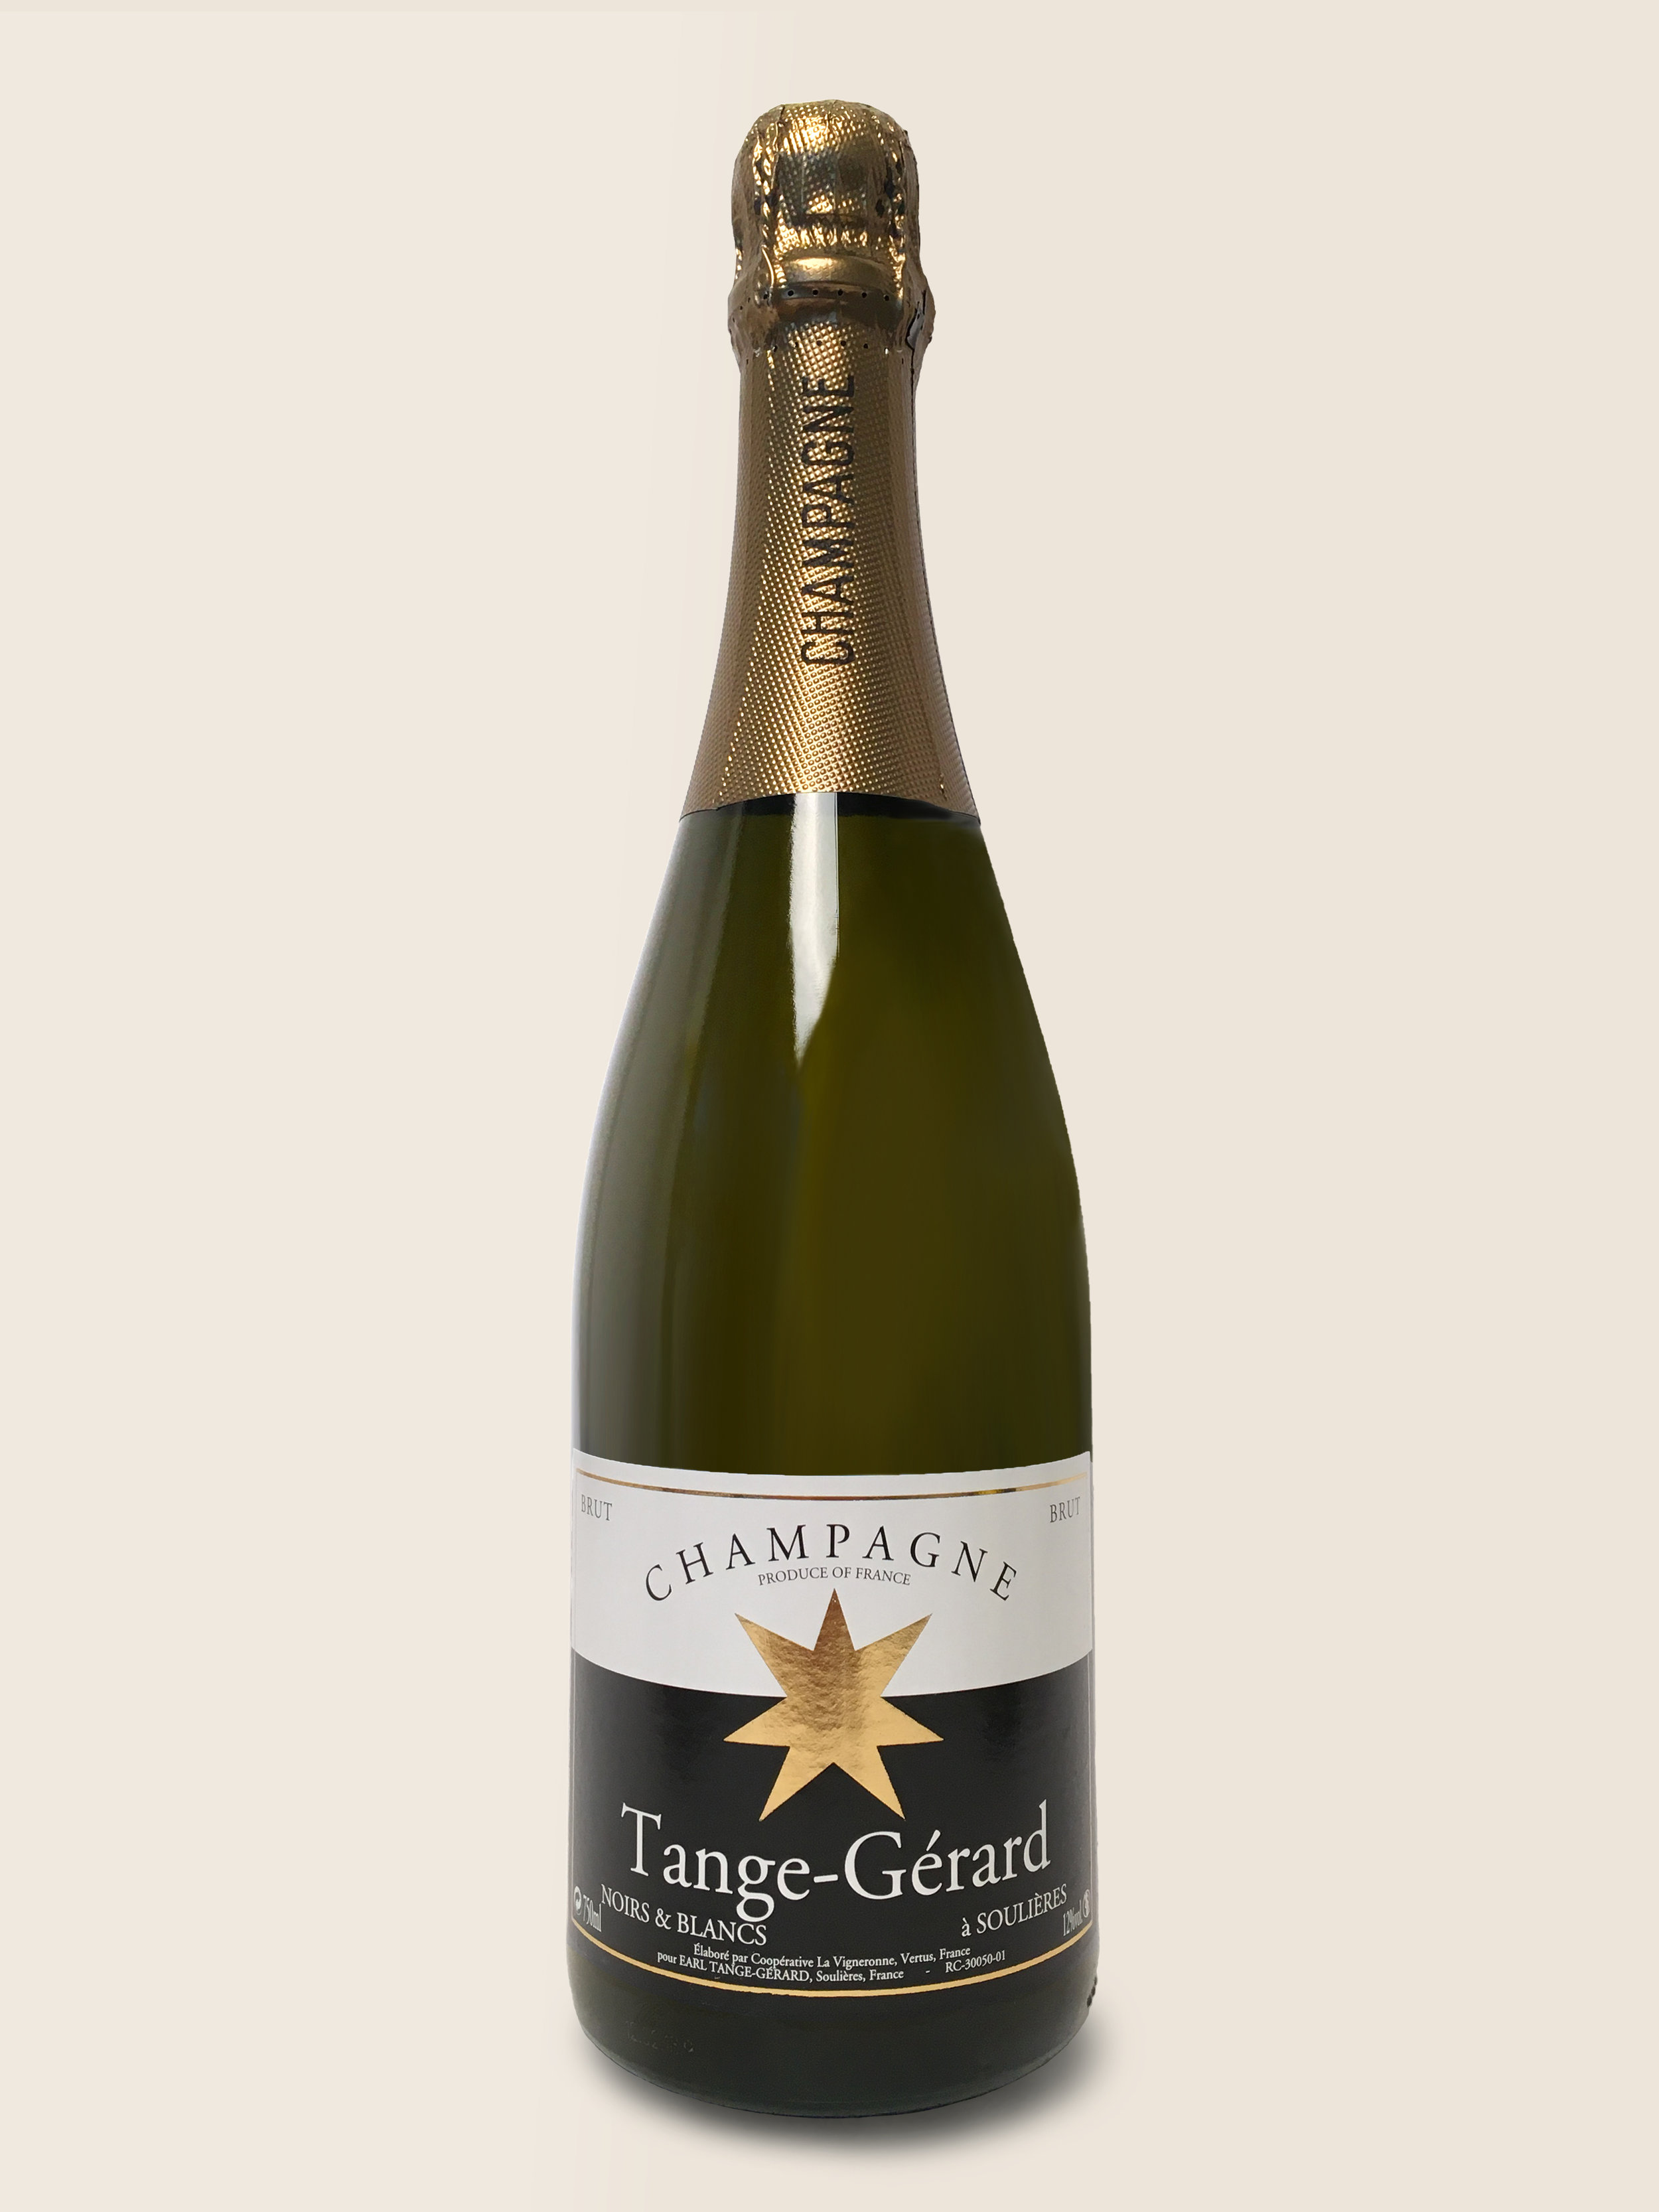 Noirs & Blancs - The Noirs & Blancs is a great all-round champagne on its own, with finger food of different kinds, charcuterie or a well matured Brie de Meaux.